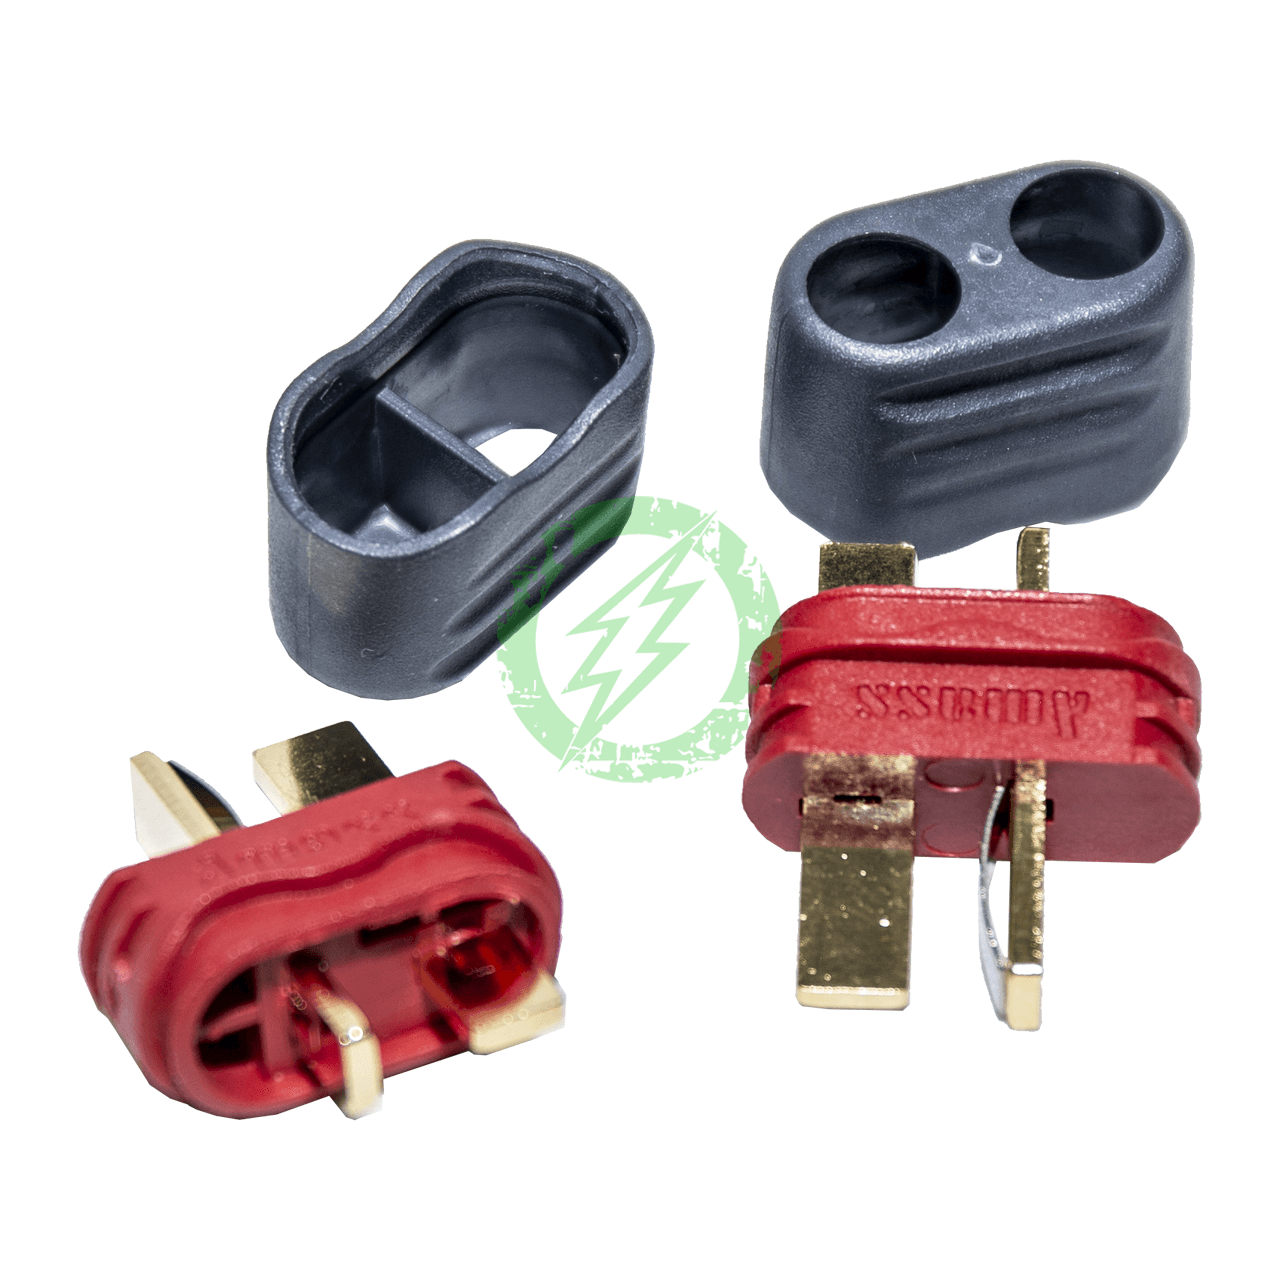 Amped Custom - Set of 2 Male Deans Connectors